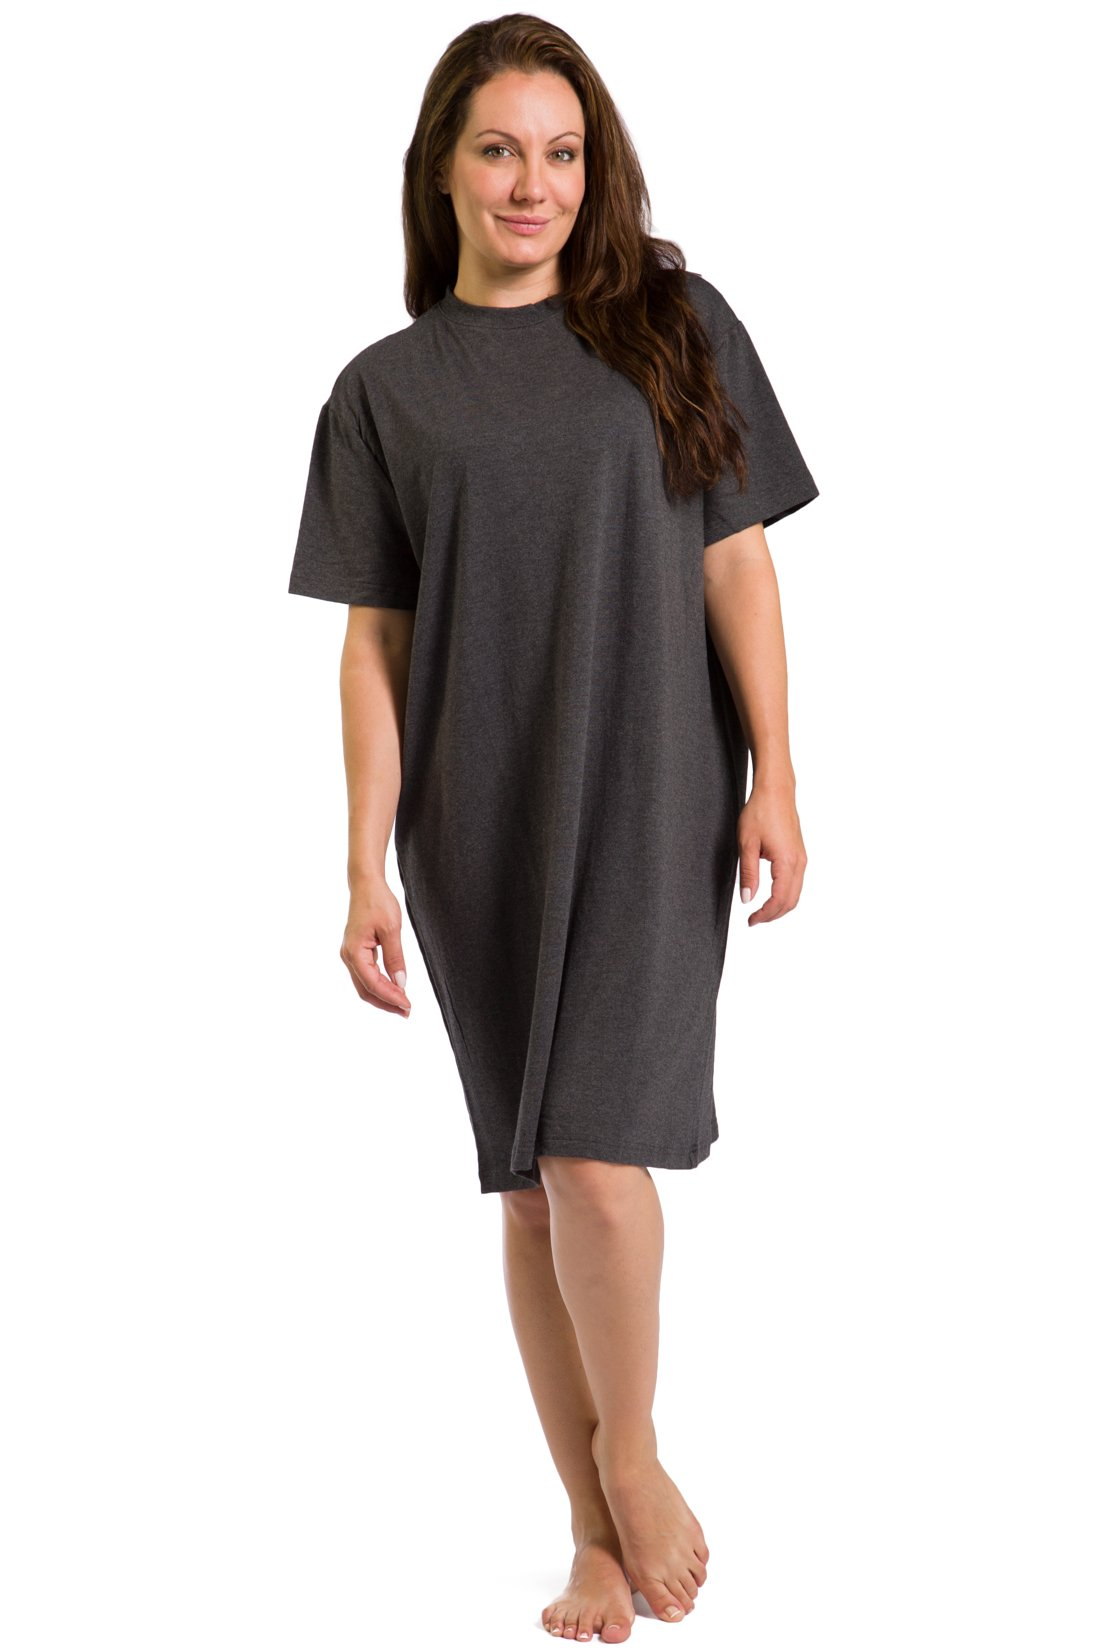 Fishers Finery Women's Tranquil Dreams Sleep Tee Comfort Fit, Heather Gray, Plus